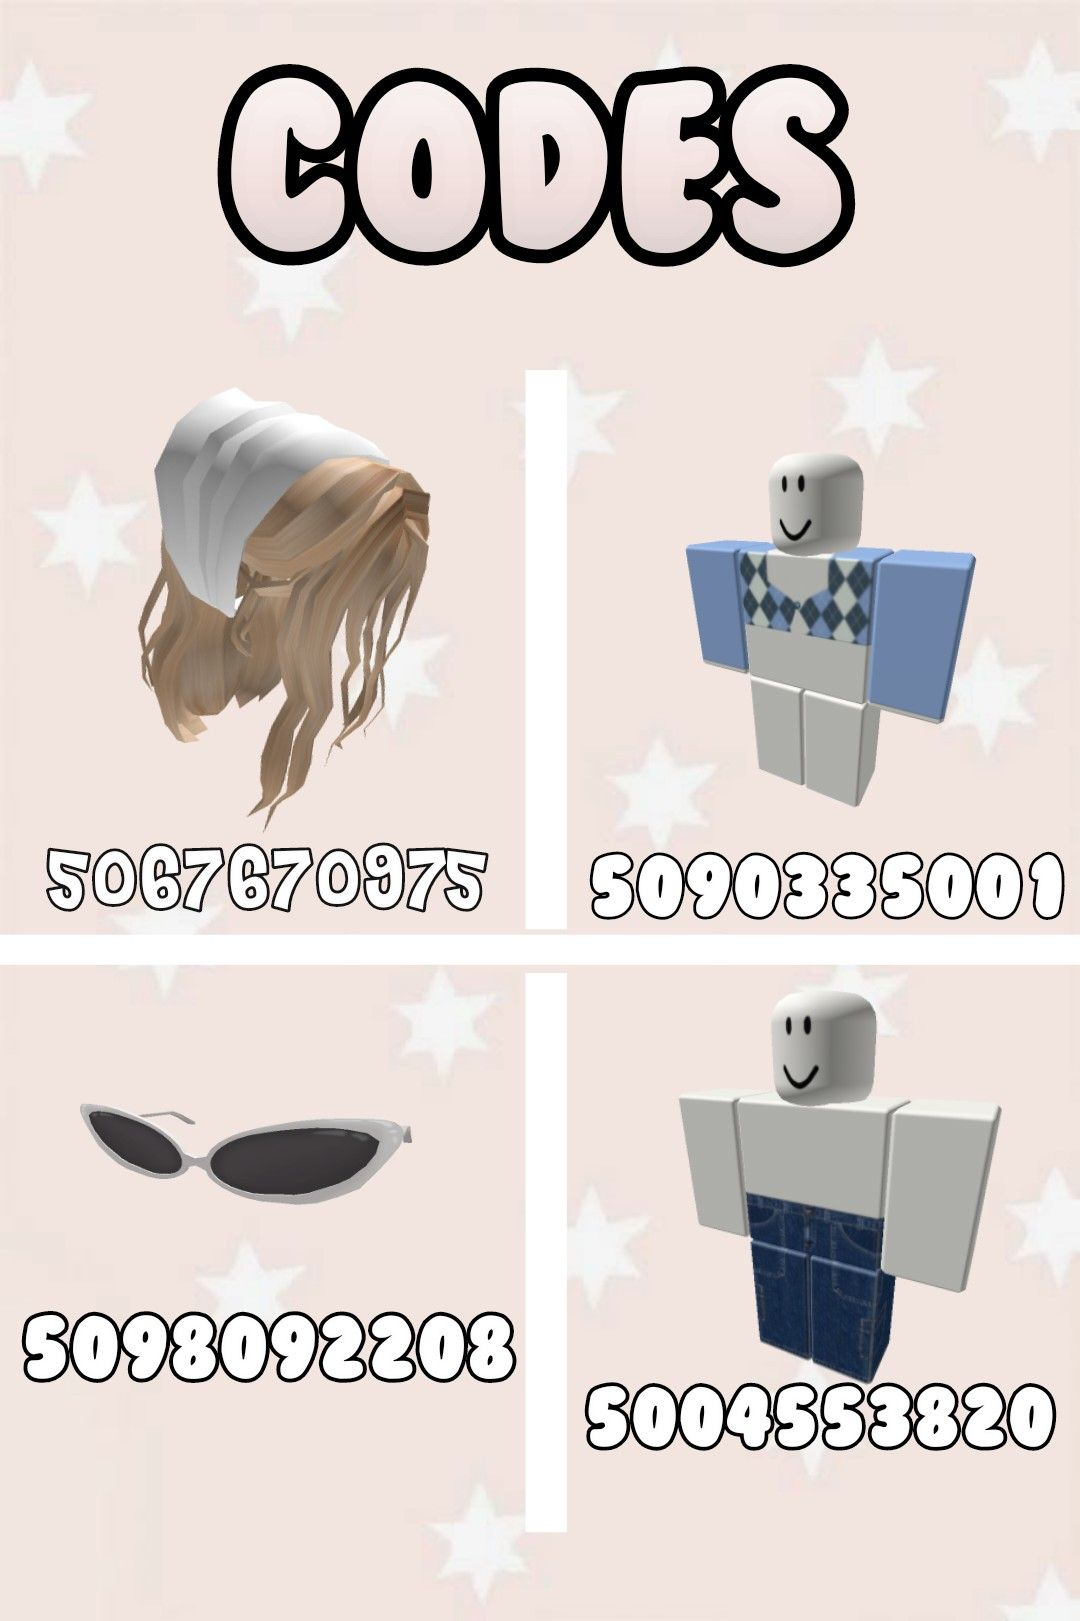 Roblox Codes In 2020 Roblox Codes Coding Roblox Pictures